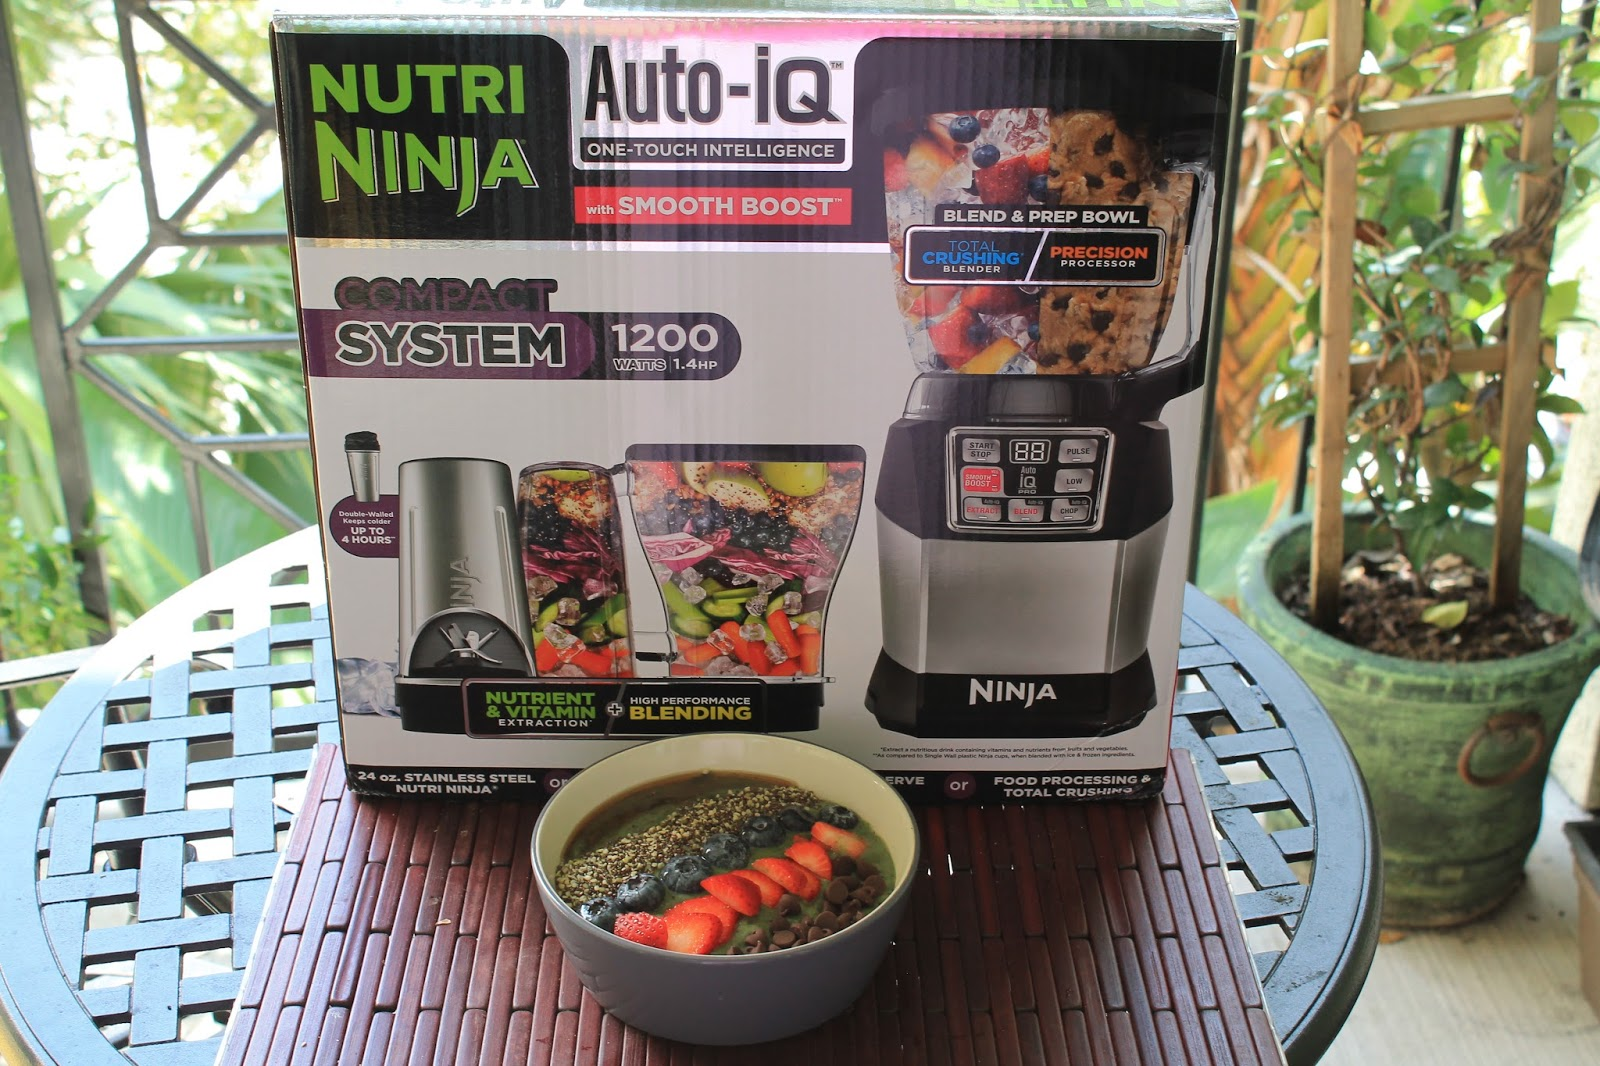 Nutri ninja blender system with auto iq technology - Nutri Ninja Auto Iq Compact System Now Includes Smooth Boost Technology Allowing You To Truly Customize Your Drink Making Experience Whether You Re